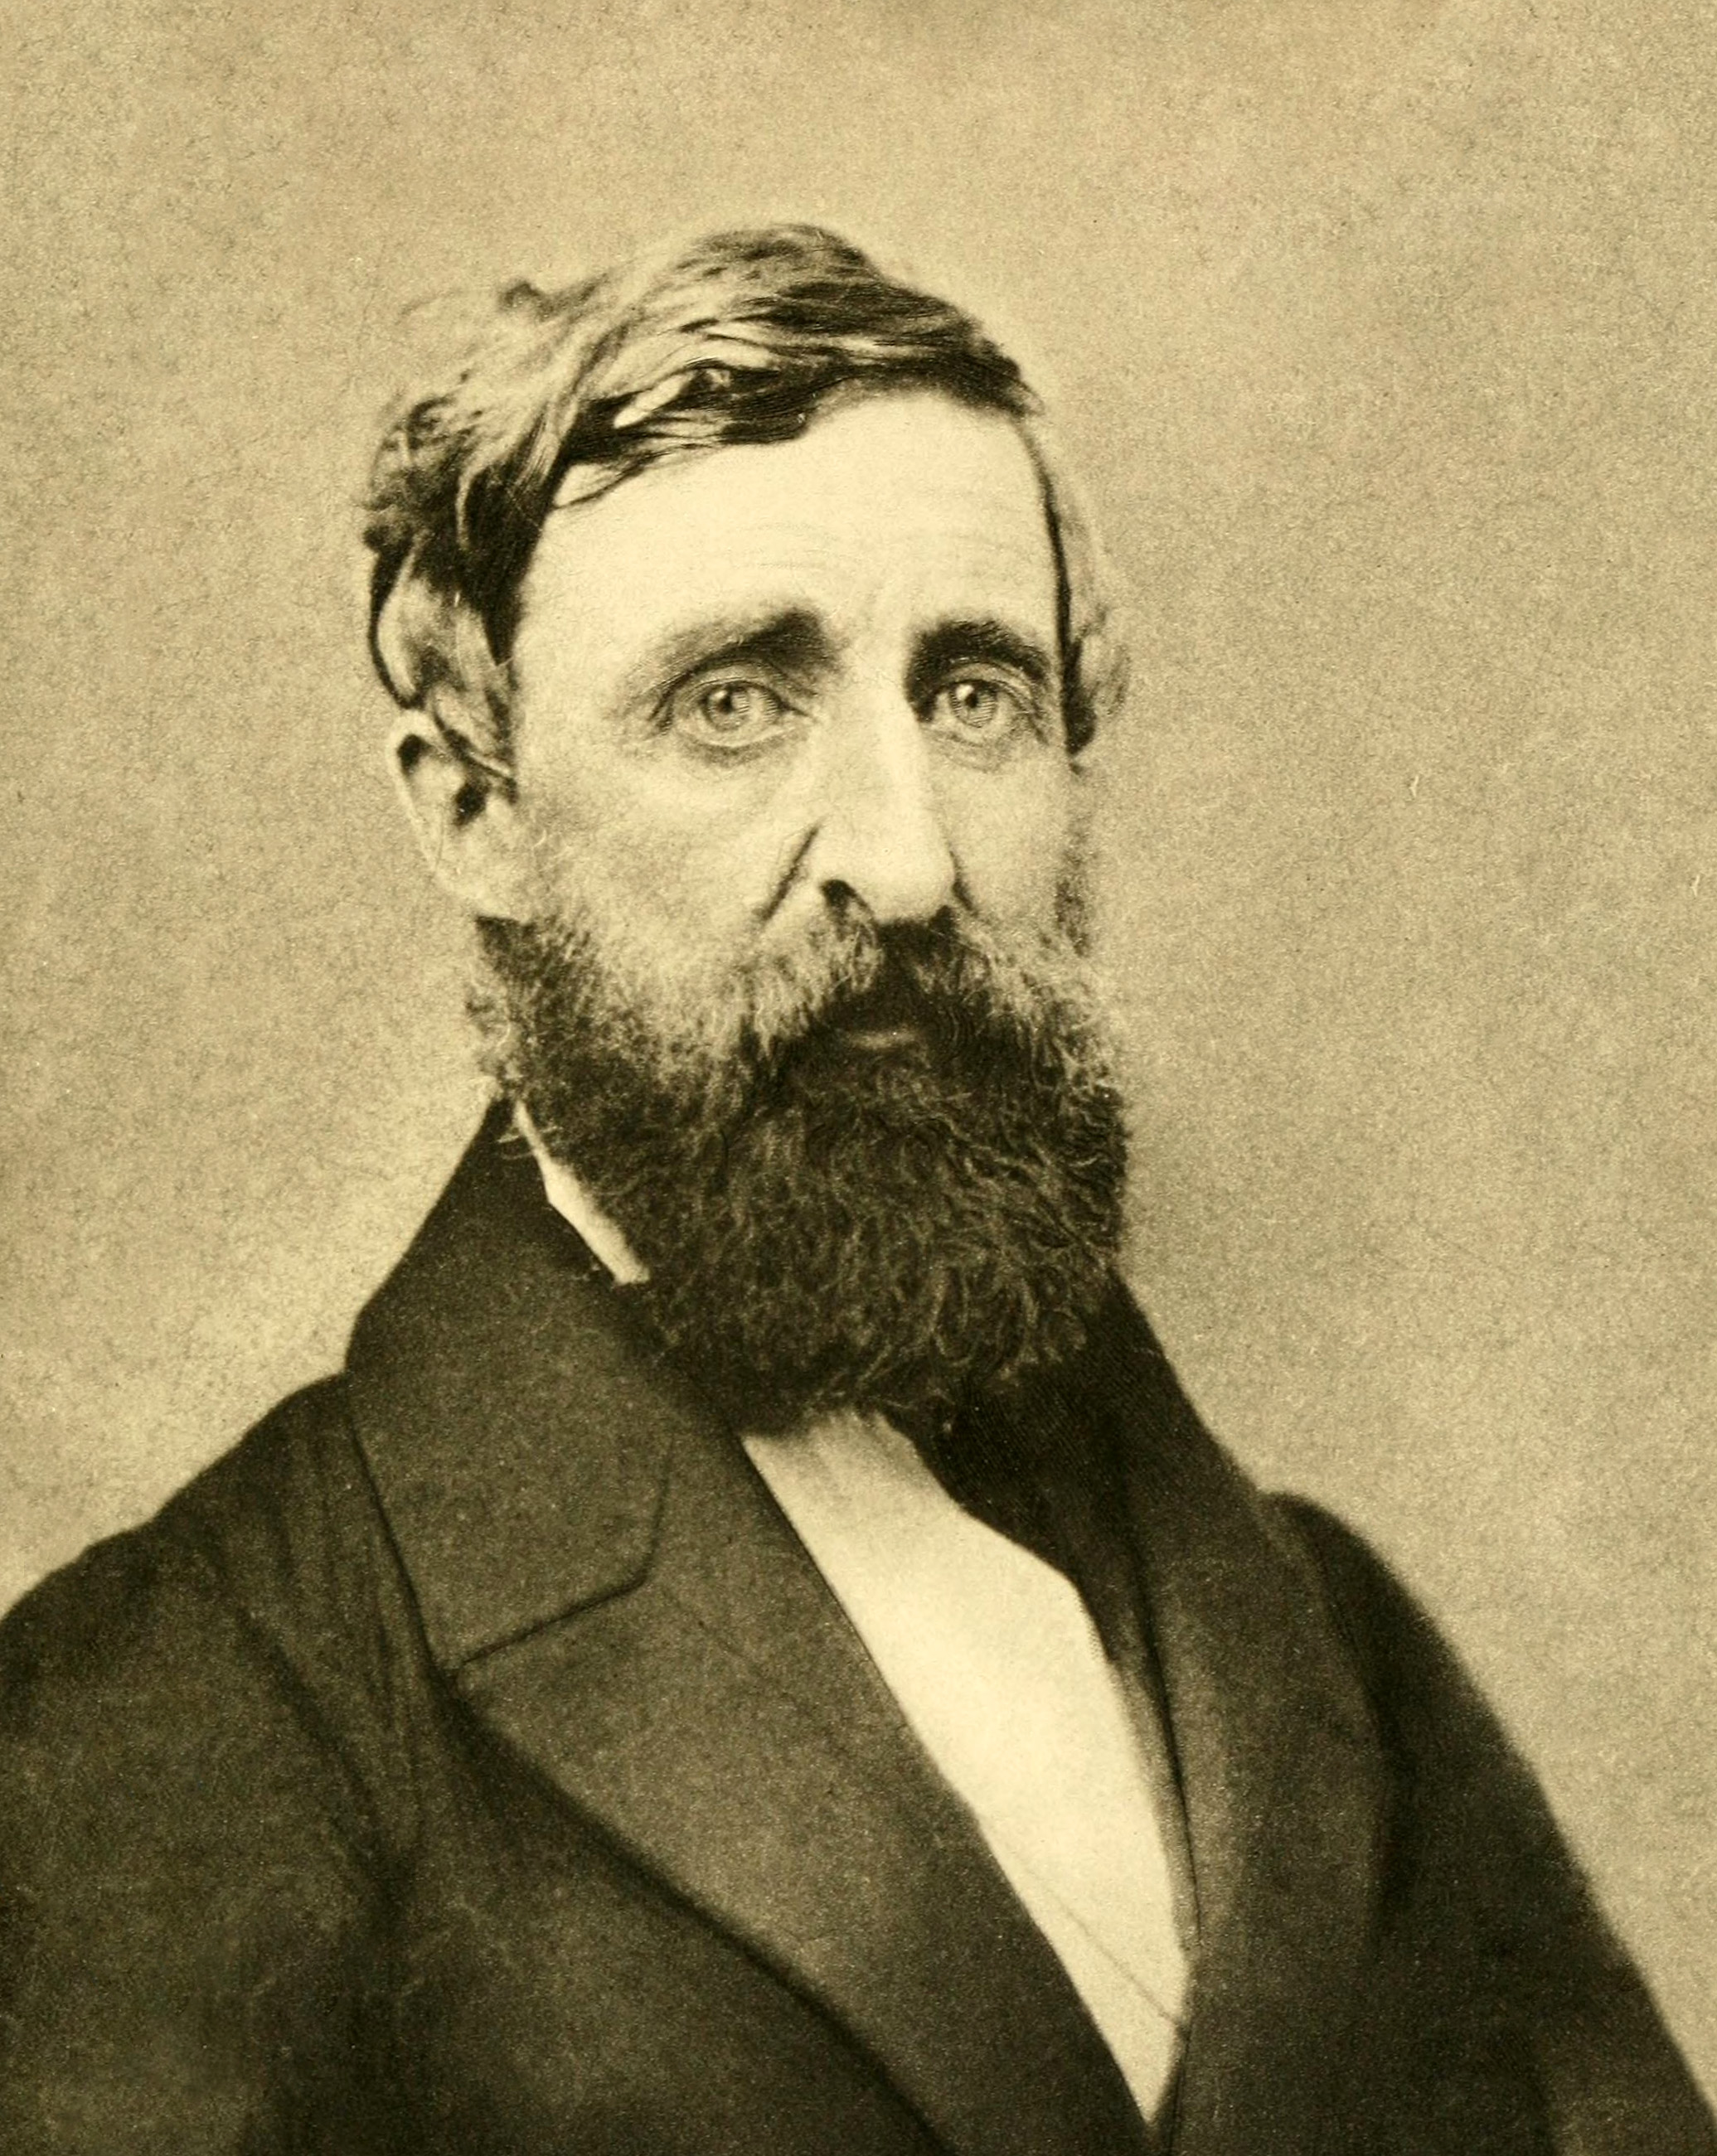 Essays on henry david thoreau rhetoric style and audience